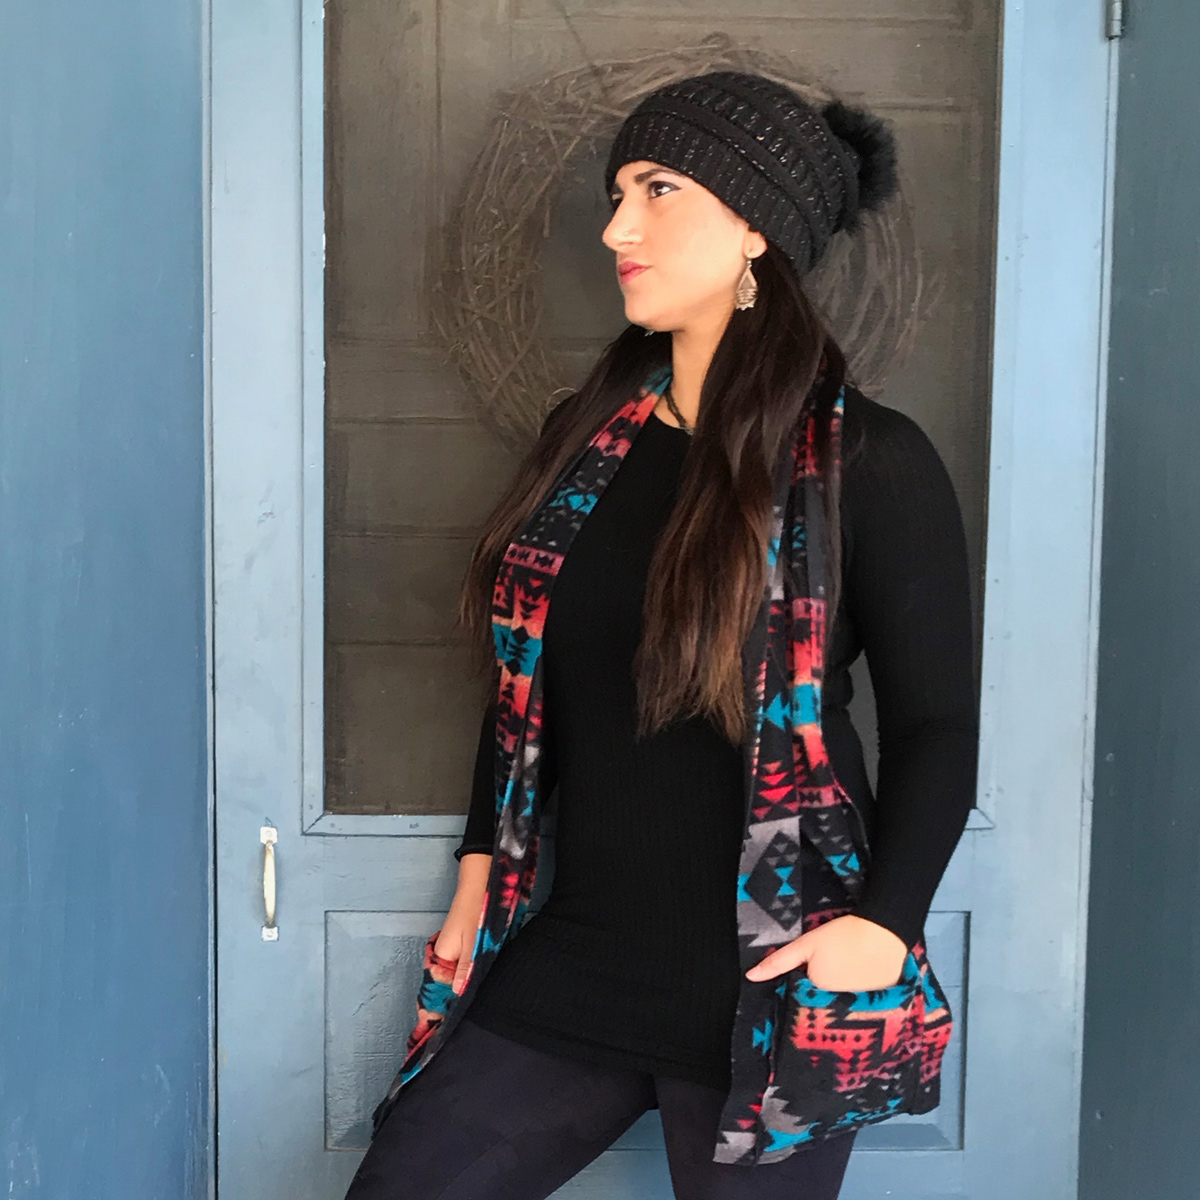 KangarooGirls™ Black Canyon Southwestern Style Fleece Scarf by Gail Russell Art & Apparel, Taos, New Mexico